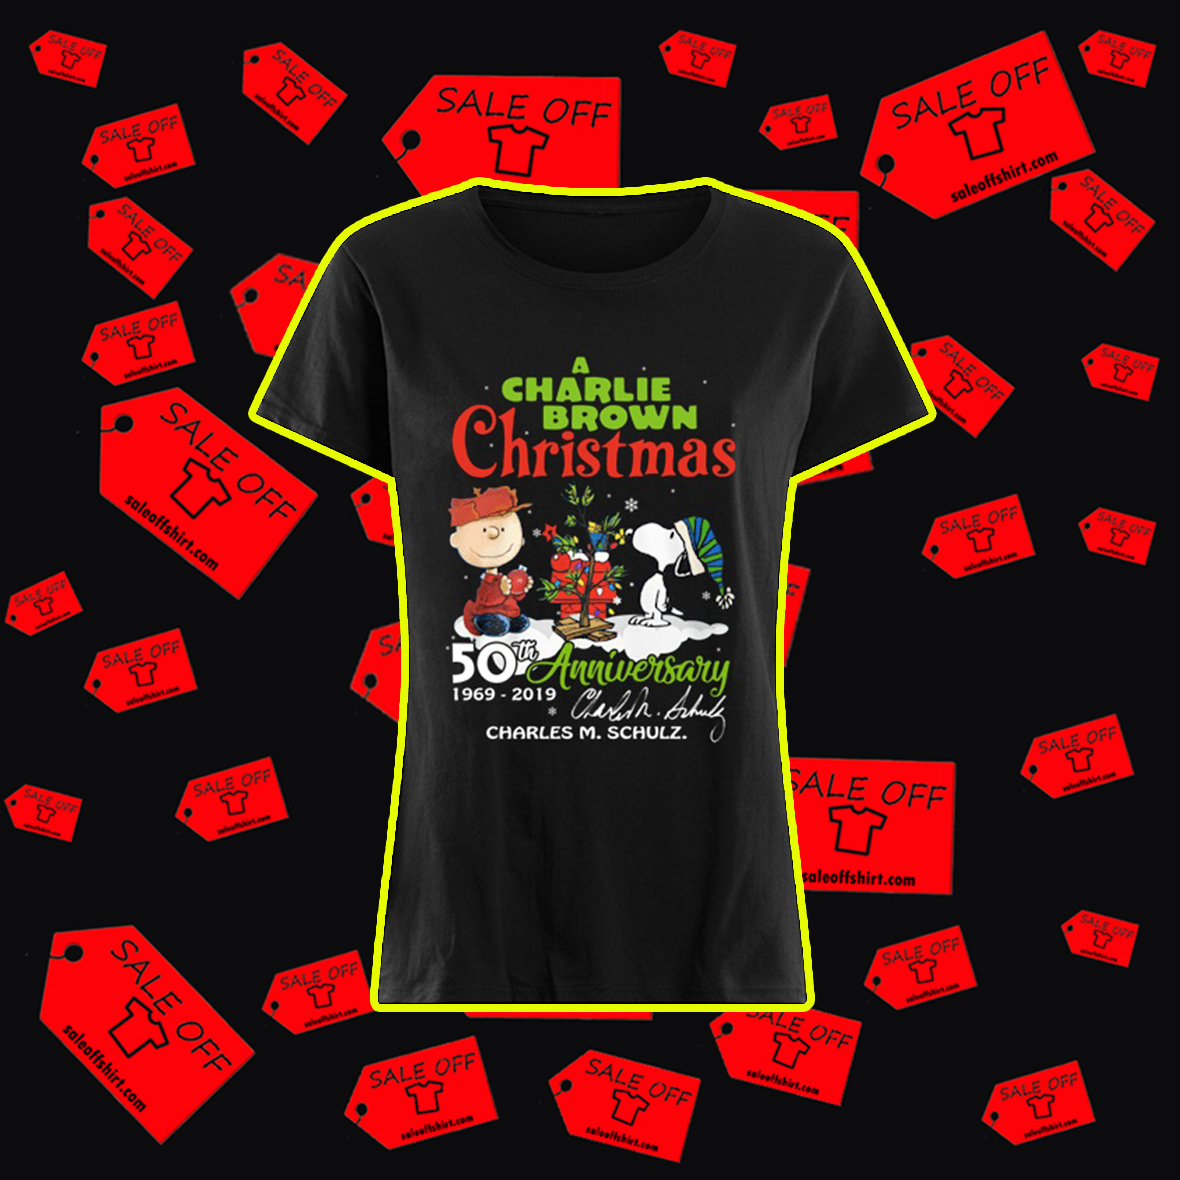 A Charlie Brown Christmas 50th Anniversary 1969 2019 Charles M. Schulz Signature shirt